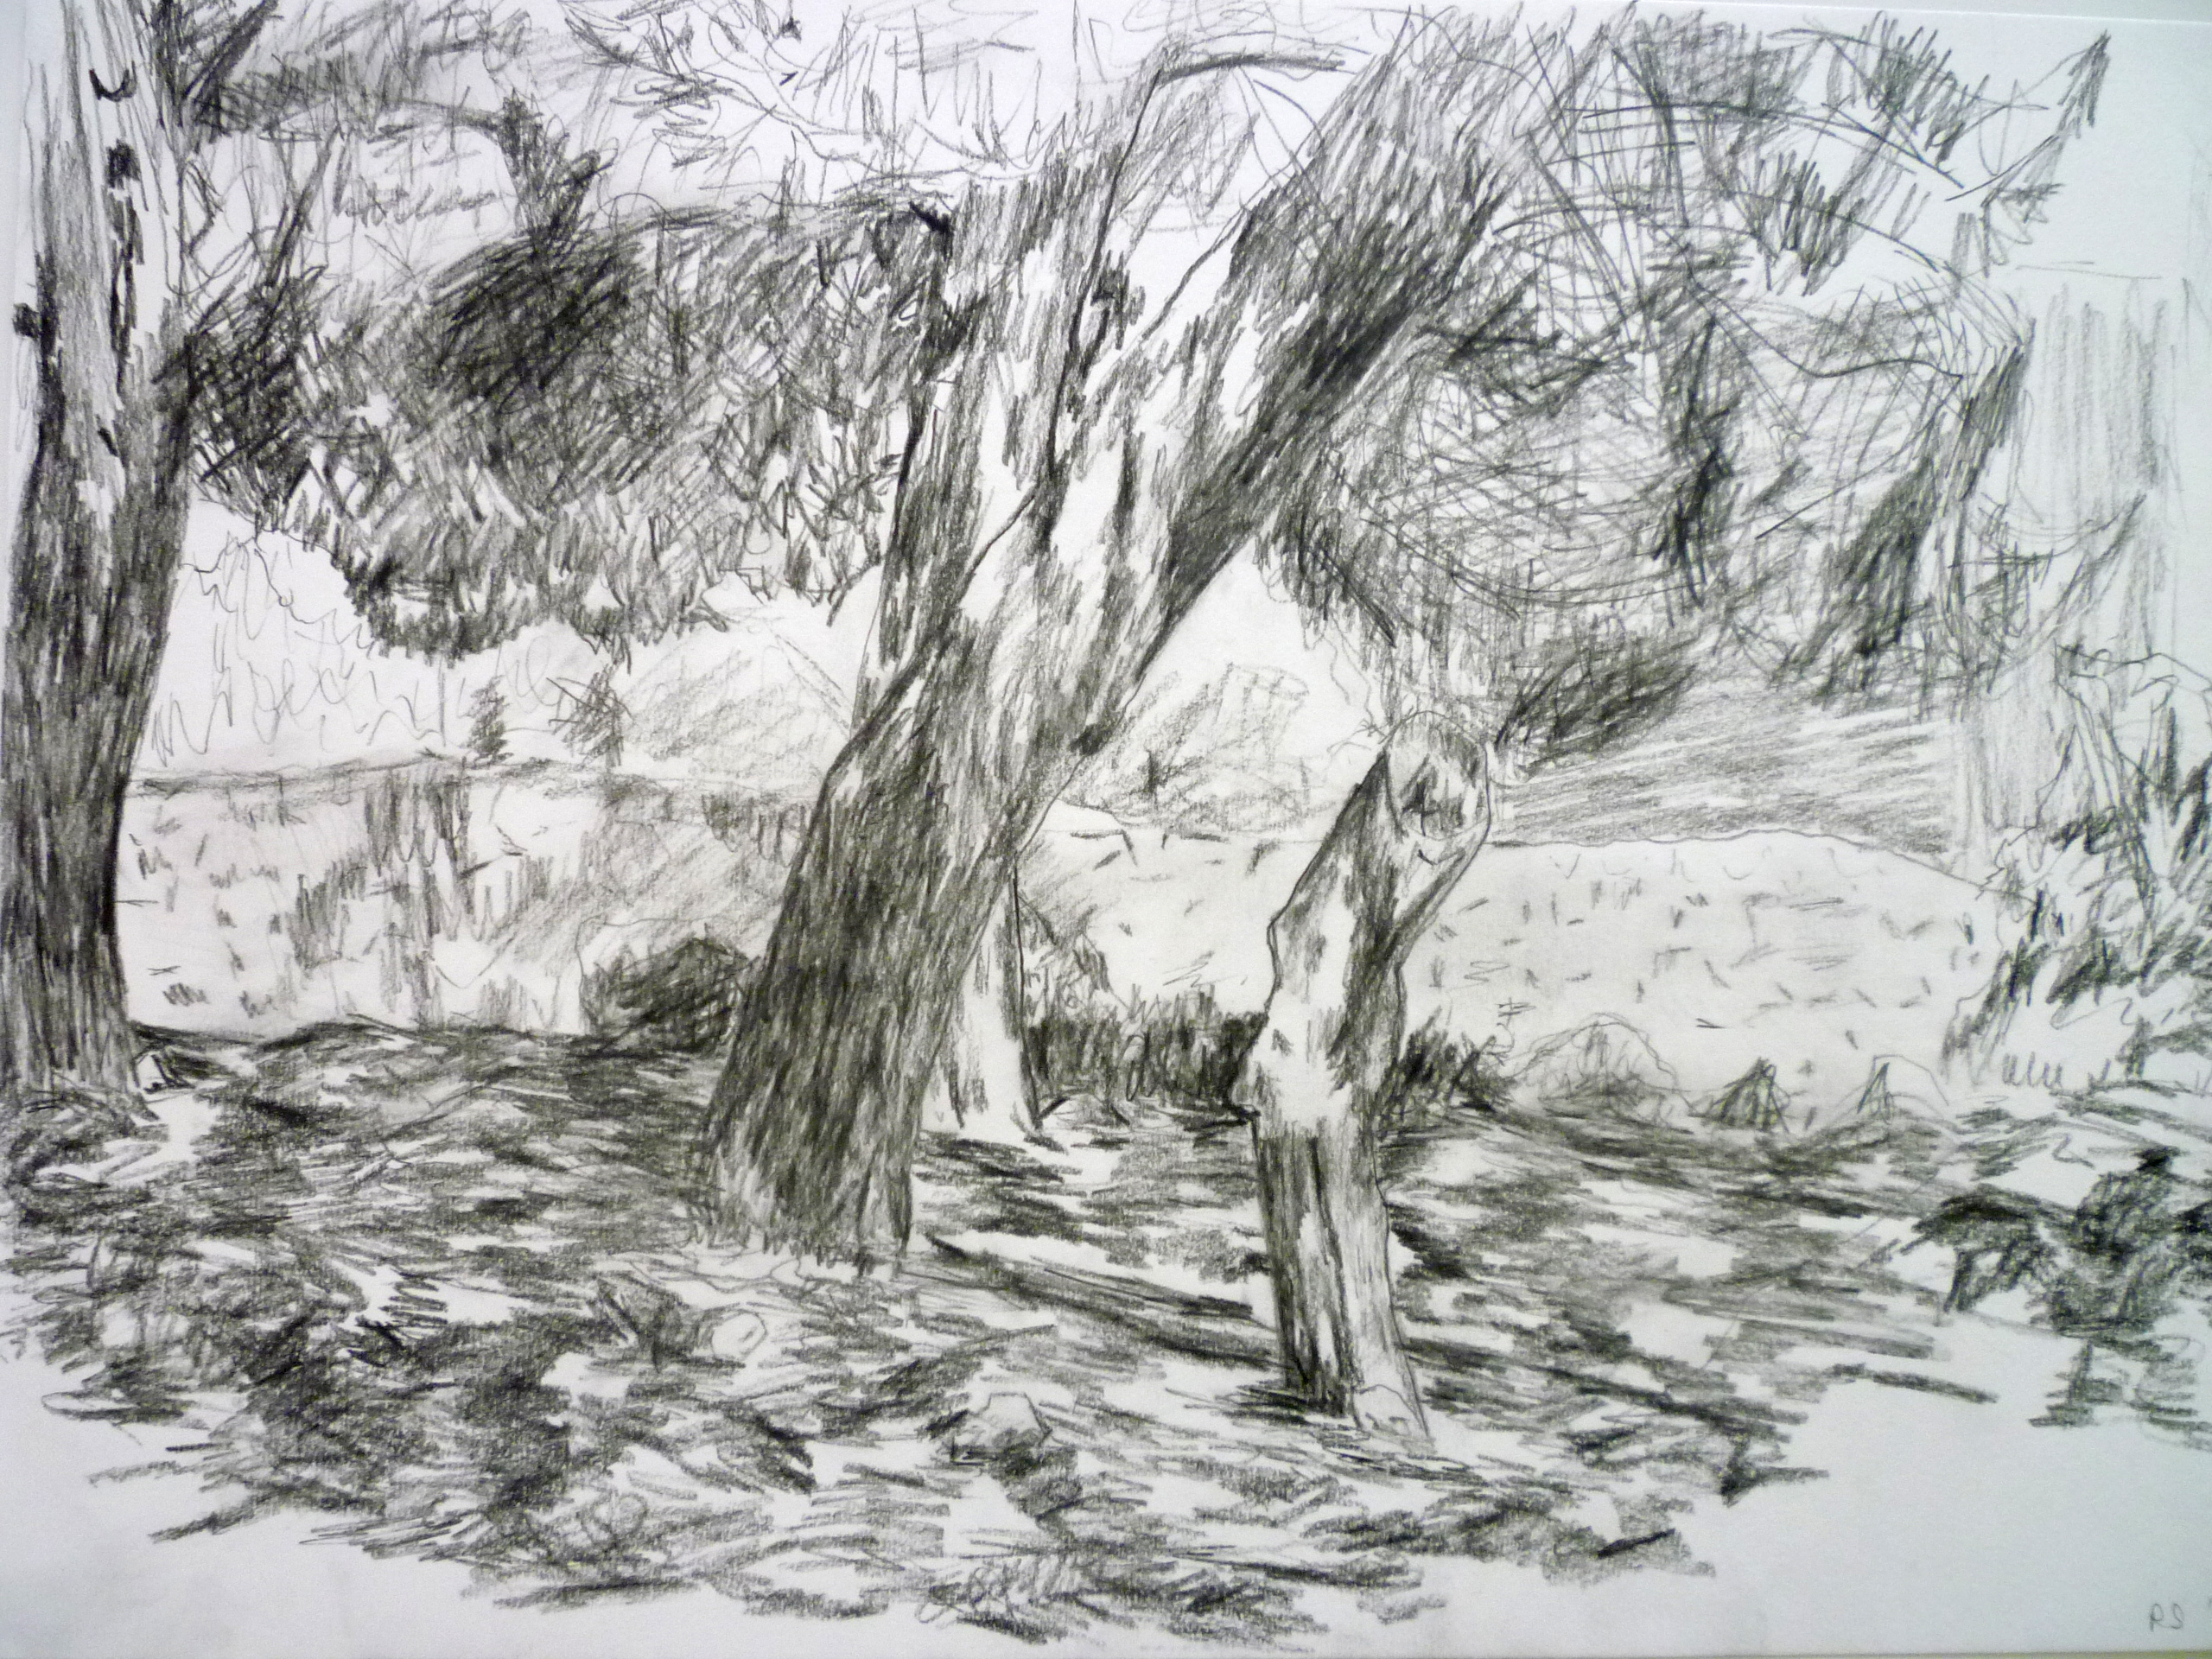 Landscape 30x 42cm [charcoal and pencil]